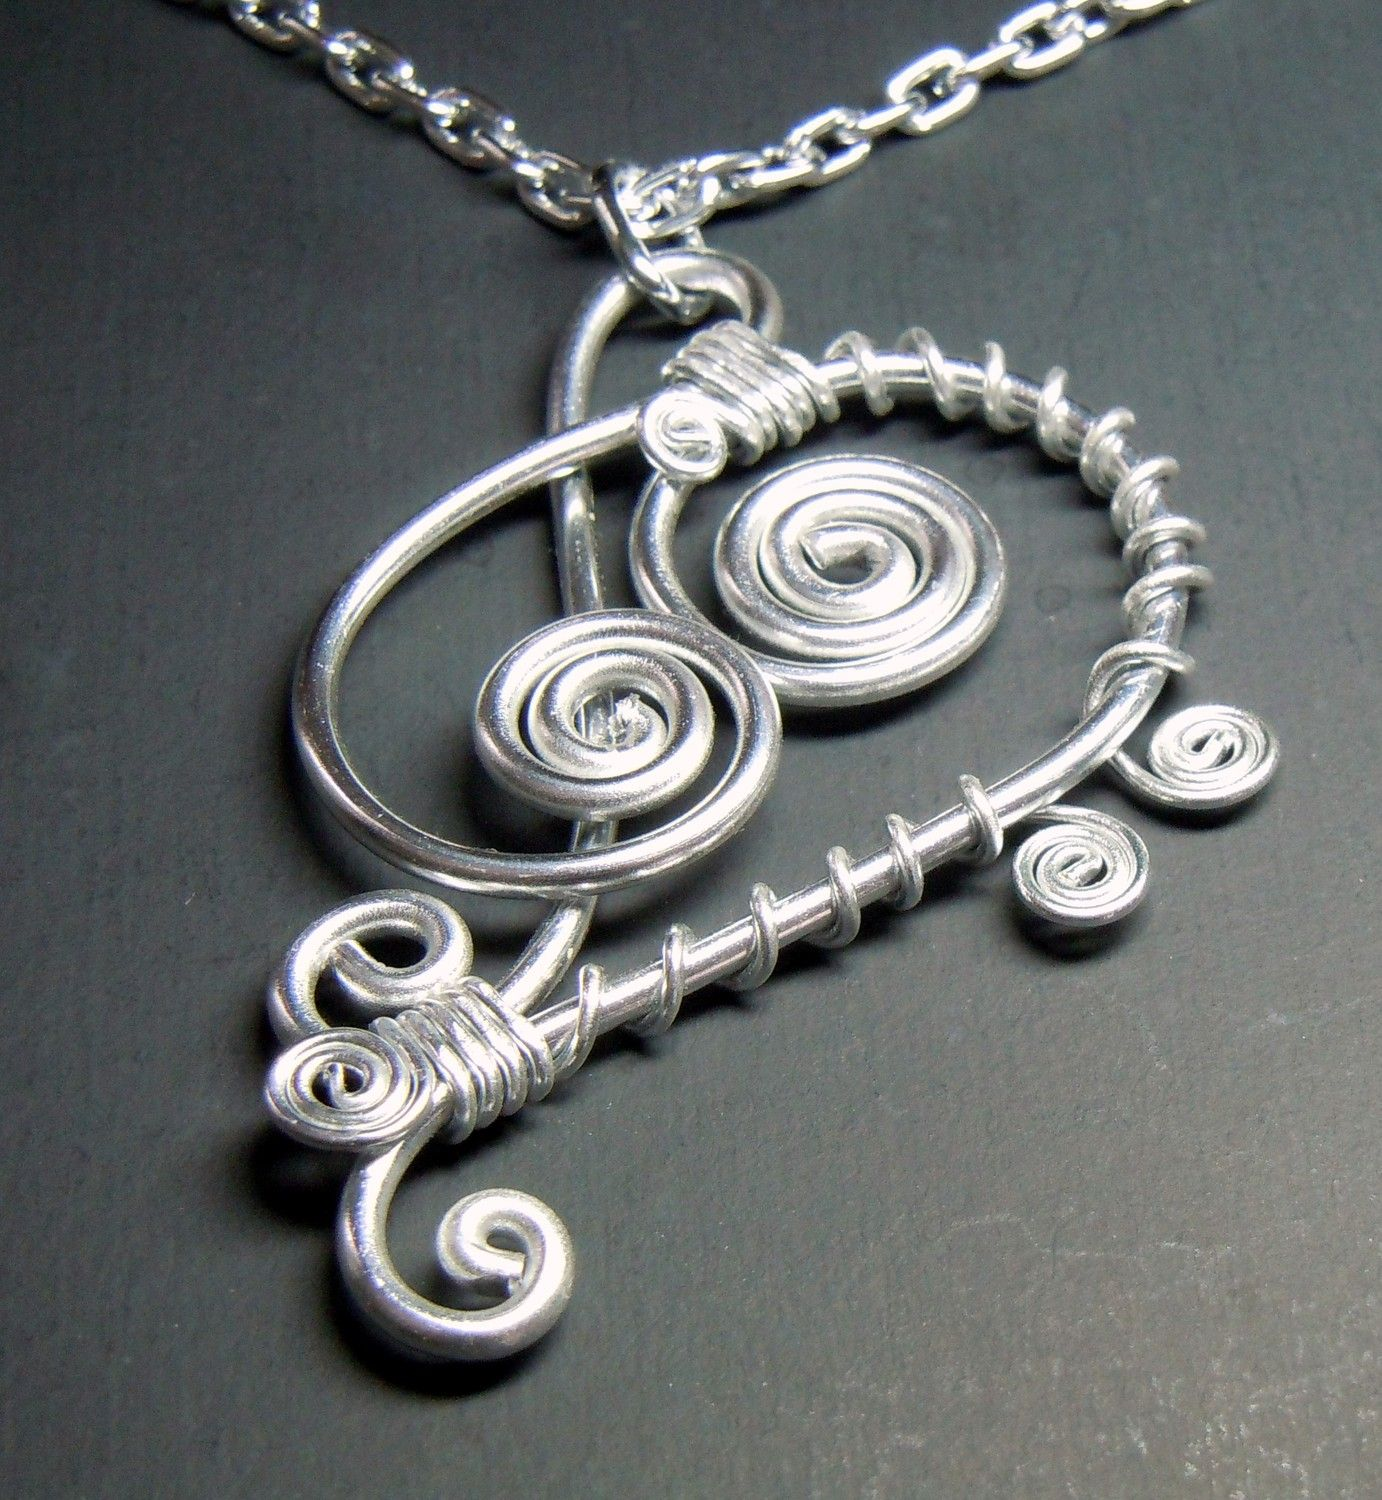 Treble and bass clef pendant necklace aloadofball Images